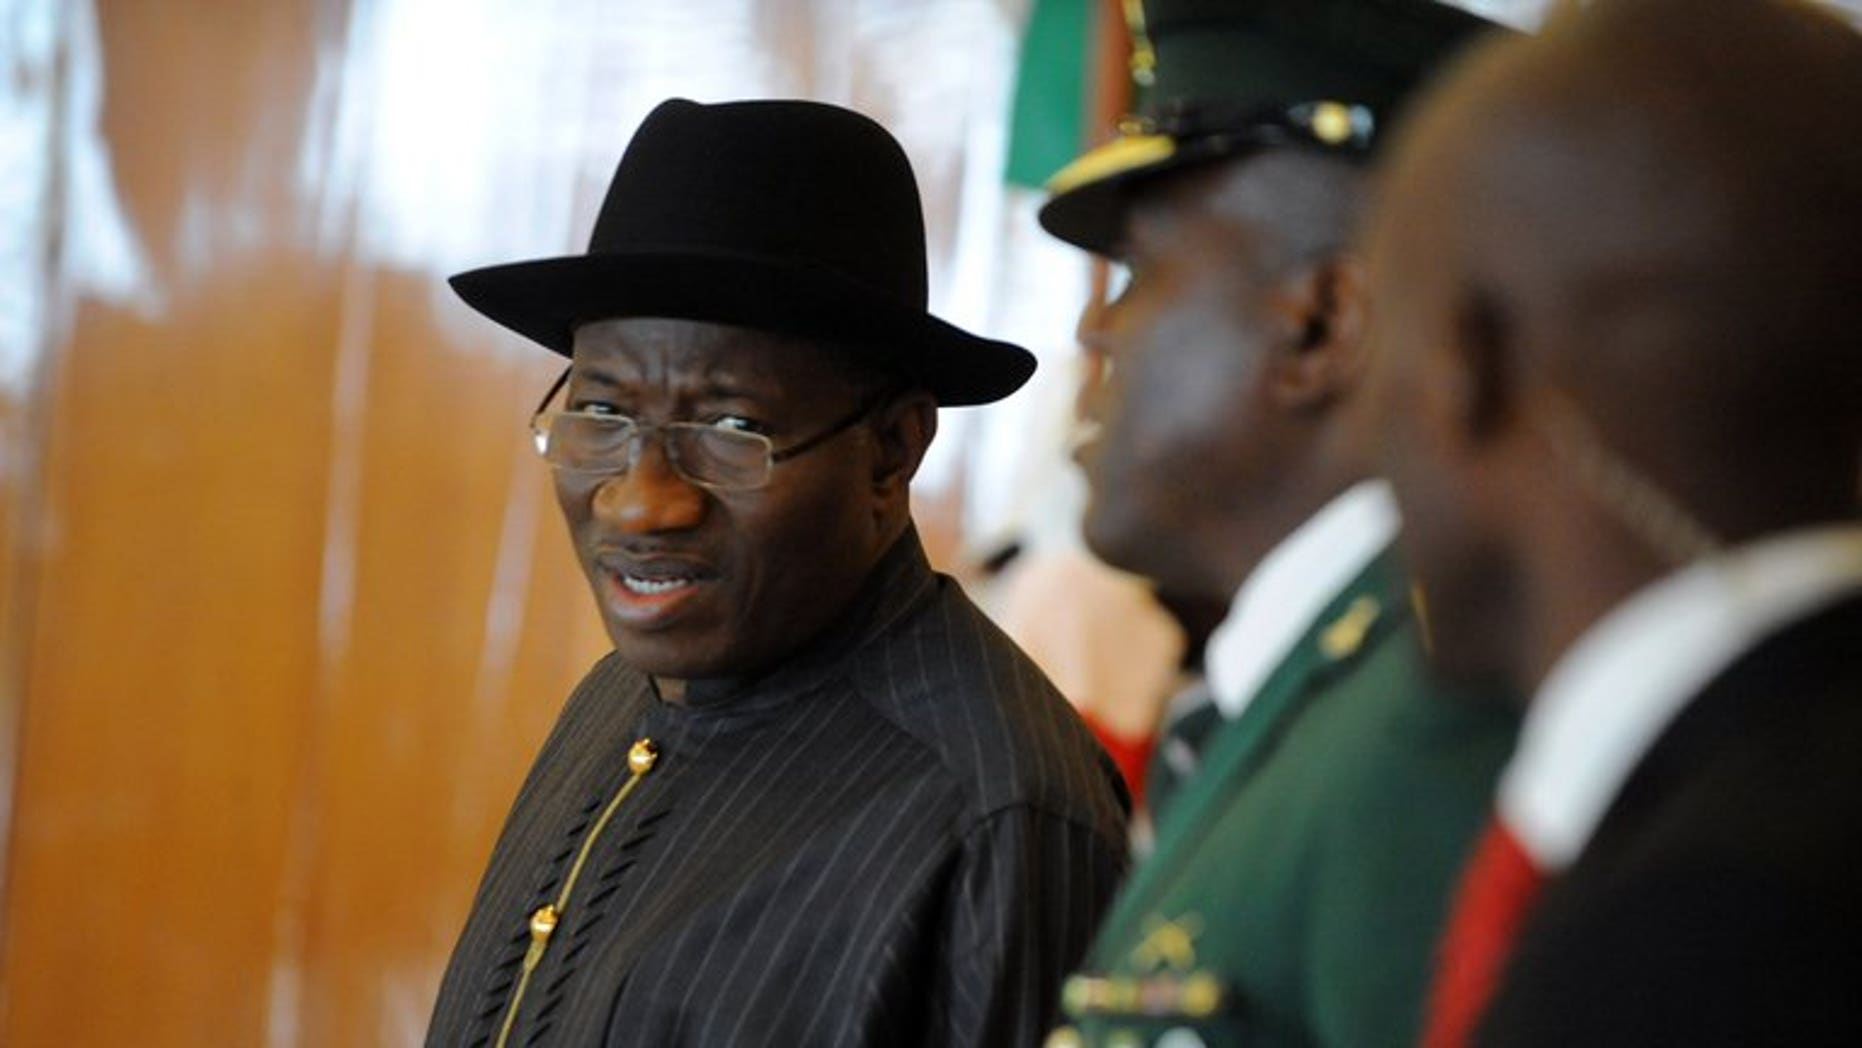 Nigerian President Goodluck Jonathan (L) in Abuja on July 18, 2013.